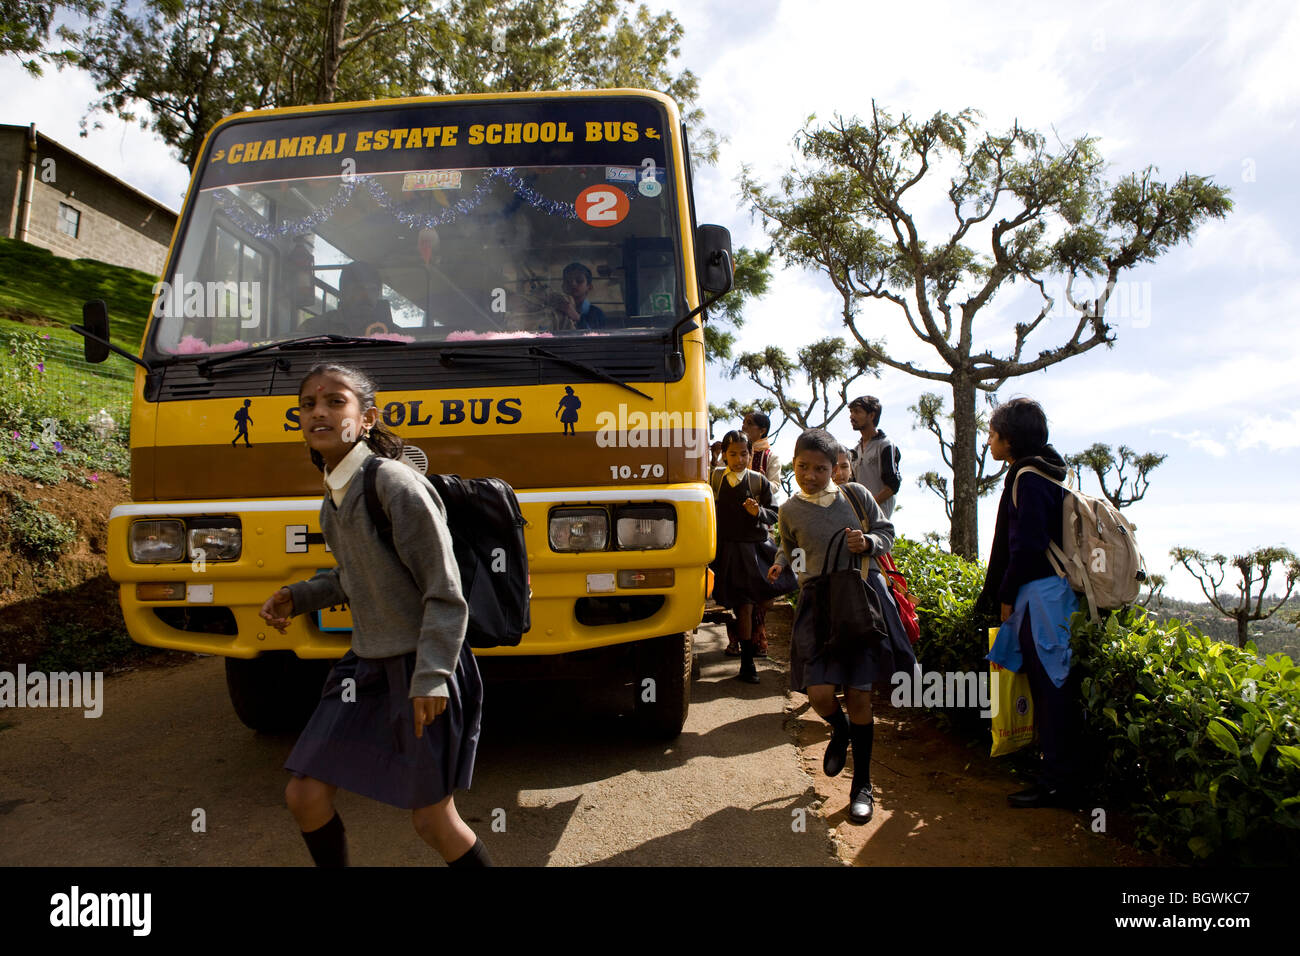 Indian children arriving at school on the school bus - Stock Image